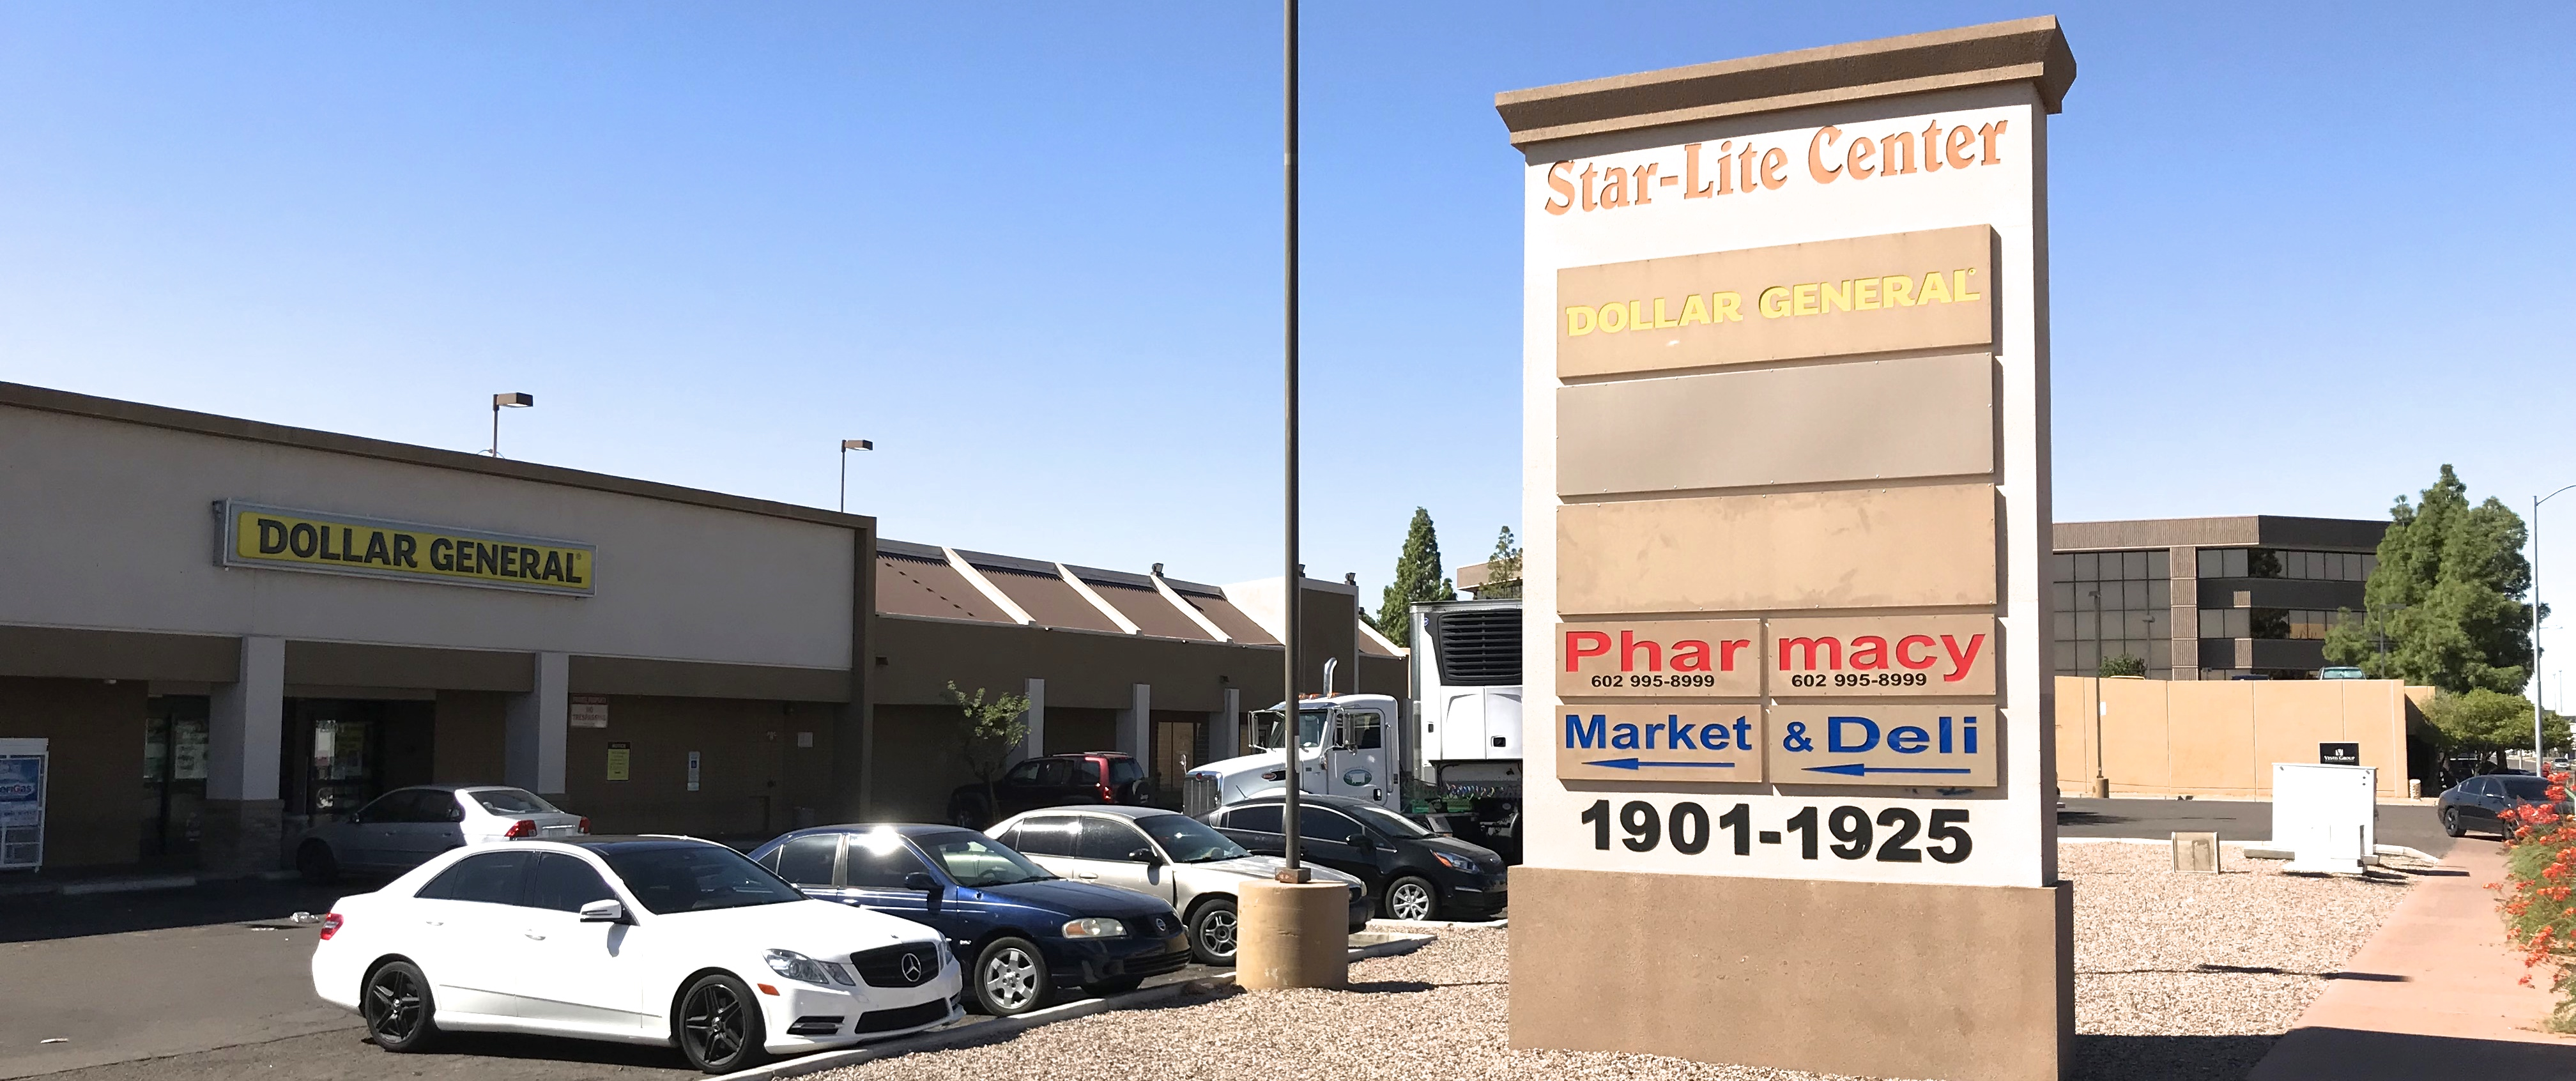 Camelback 19 | Retail Space For Lease In Phoenix AZ | Vestis Group